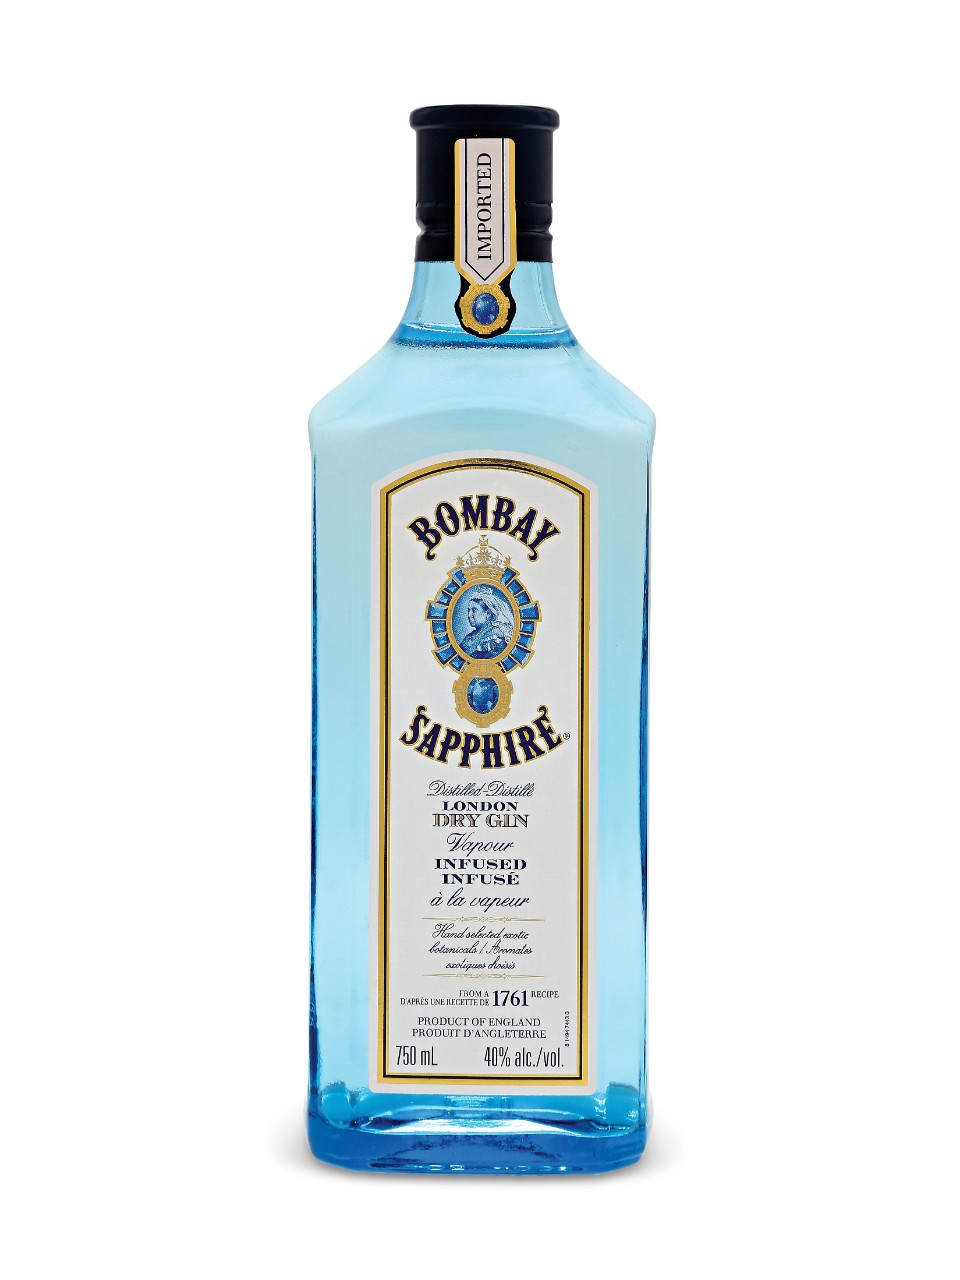 Http Www Lcbo Com Lcbo Product Bombay Sapphire London Dry Gin 316844